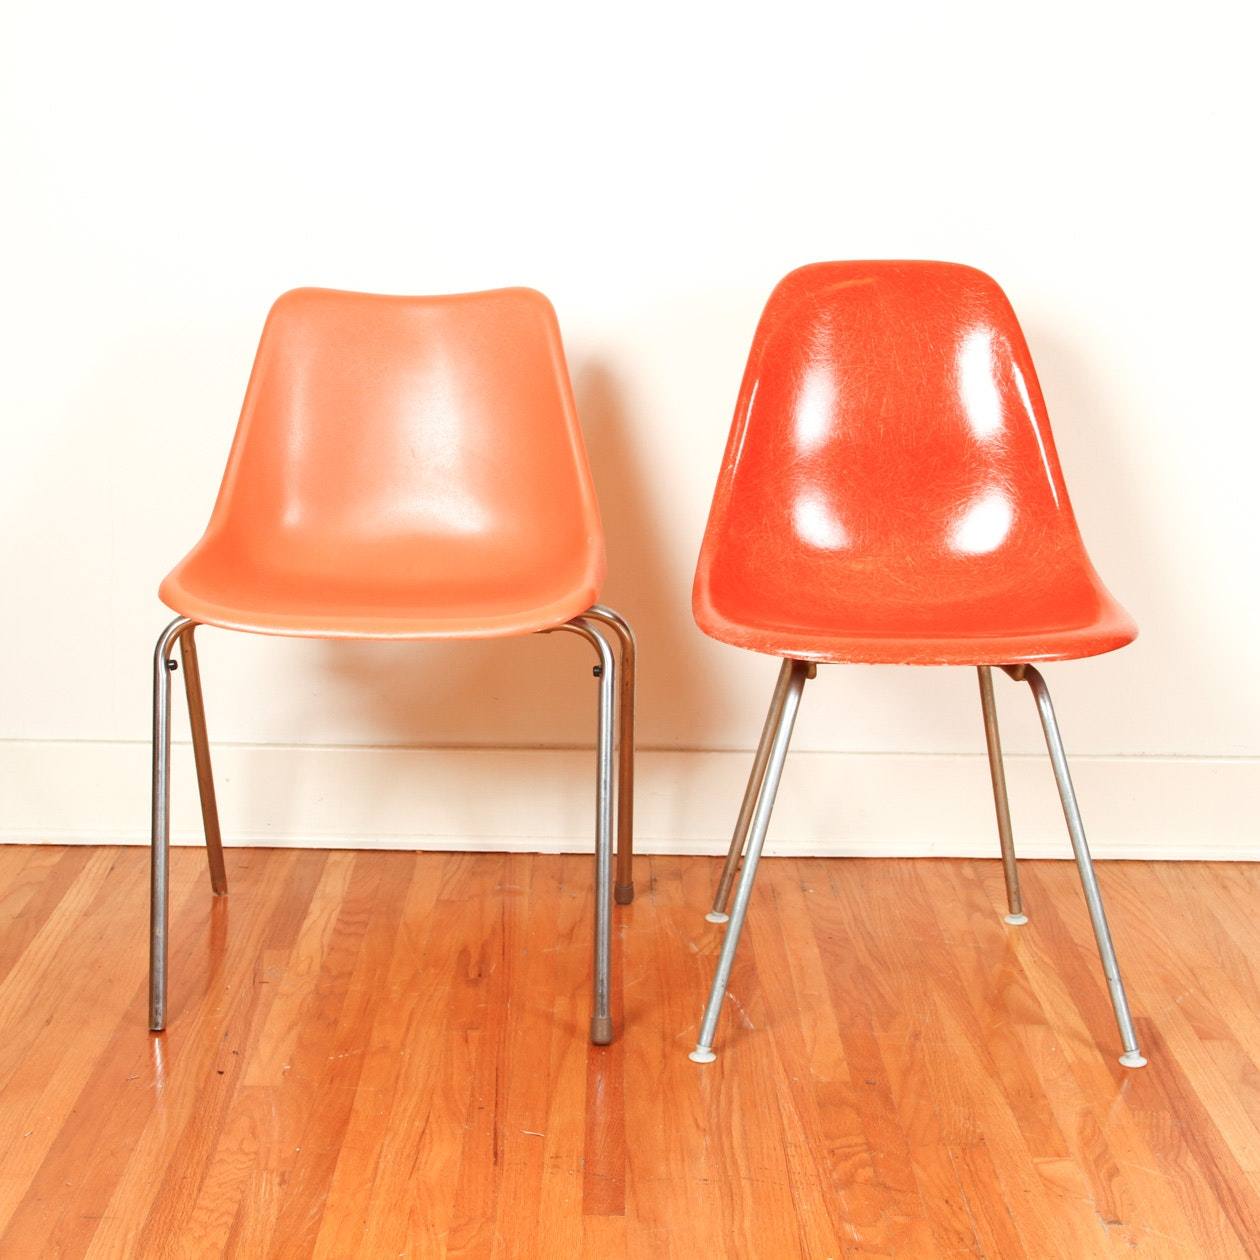 Two Mid Century Modern Shell Chairs Including Herman Miller